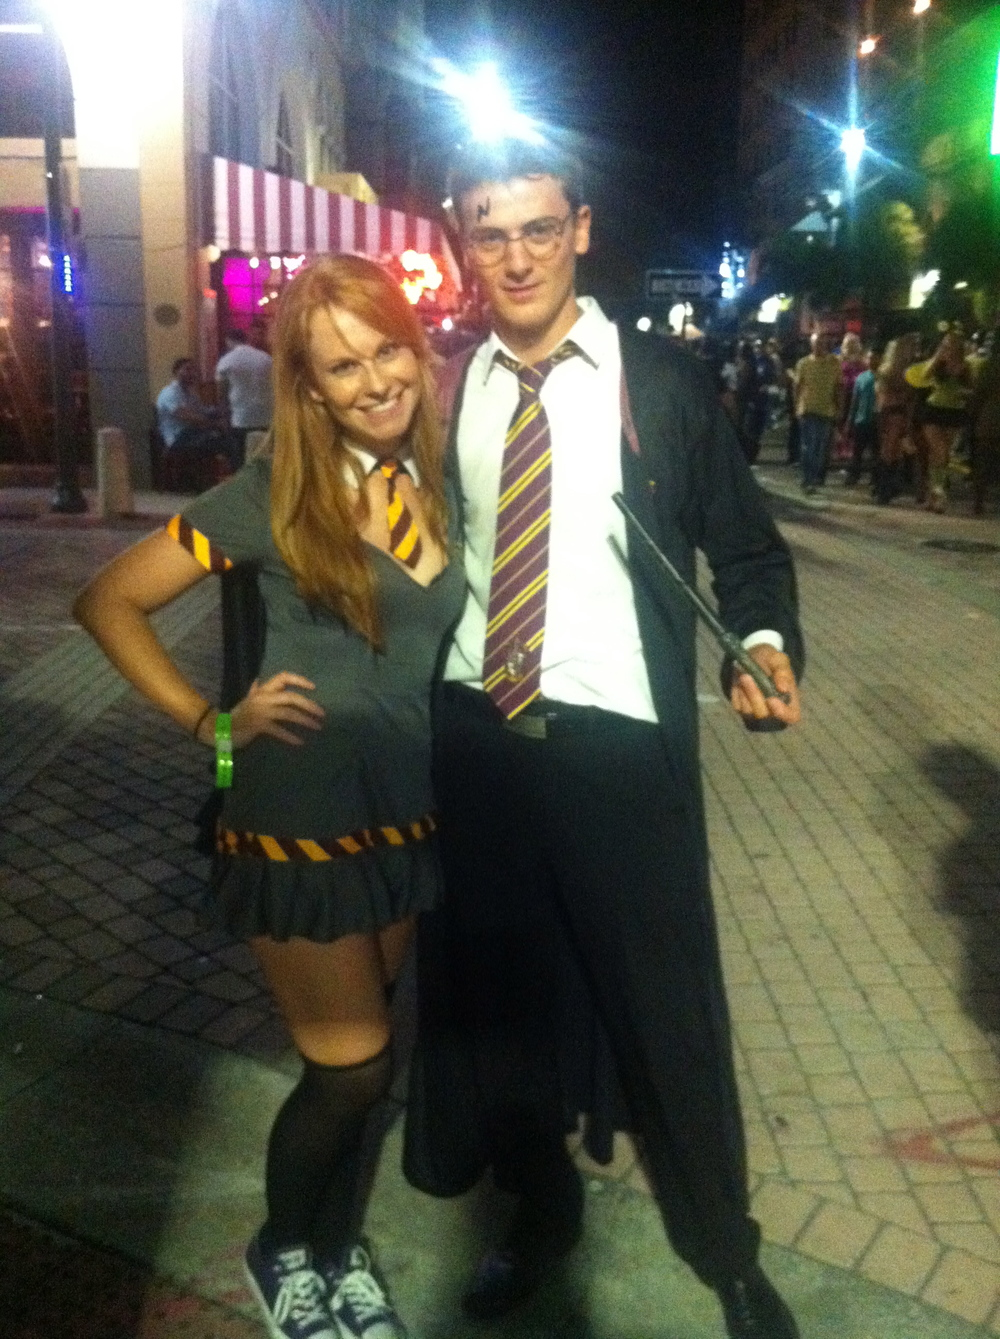 Big Harry Potter fan here, so naturally, I was Ginny Weasley for my first big Halloween party. And I found a lovely Irish Harry in West Palm Beach.